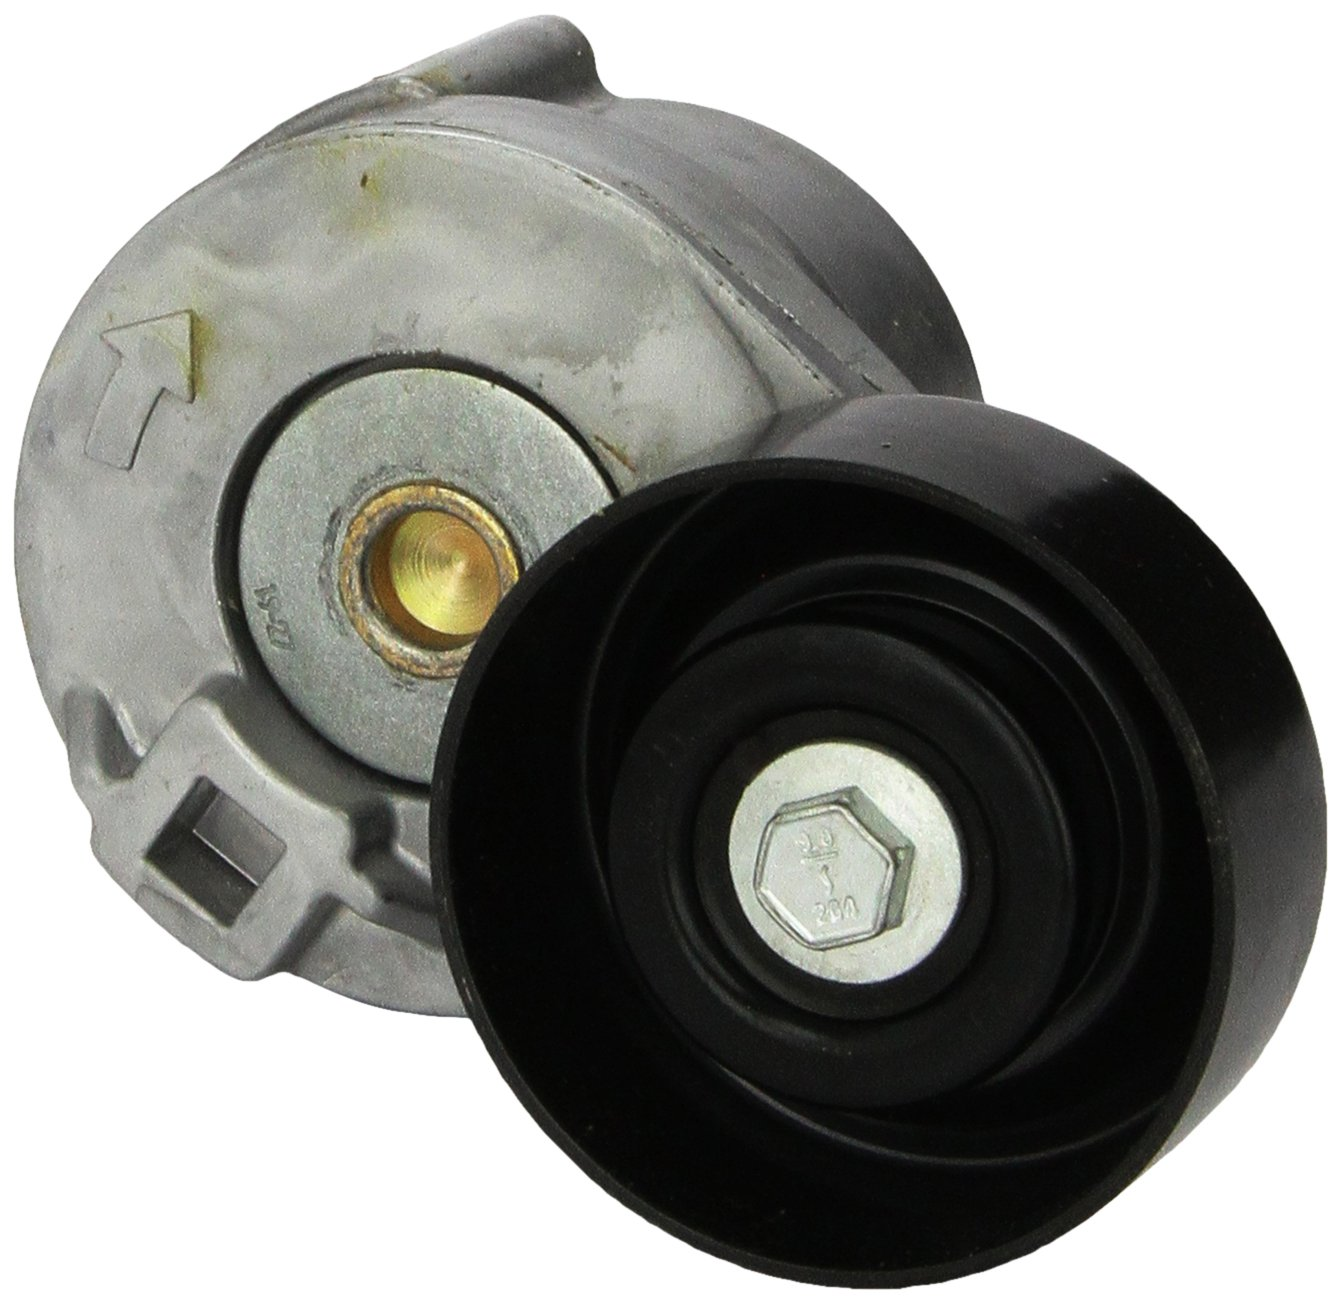 Dayco 89330 Belt Tensioner by Dayco